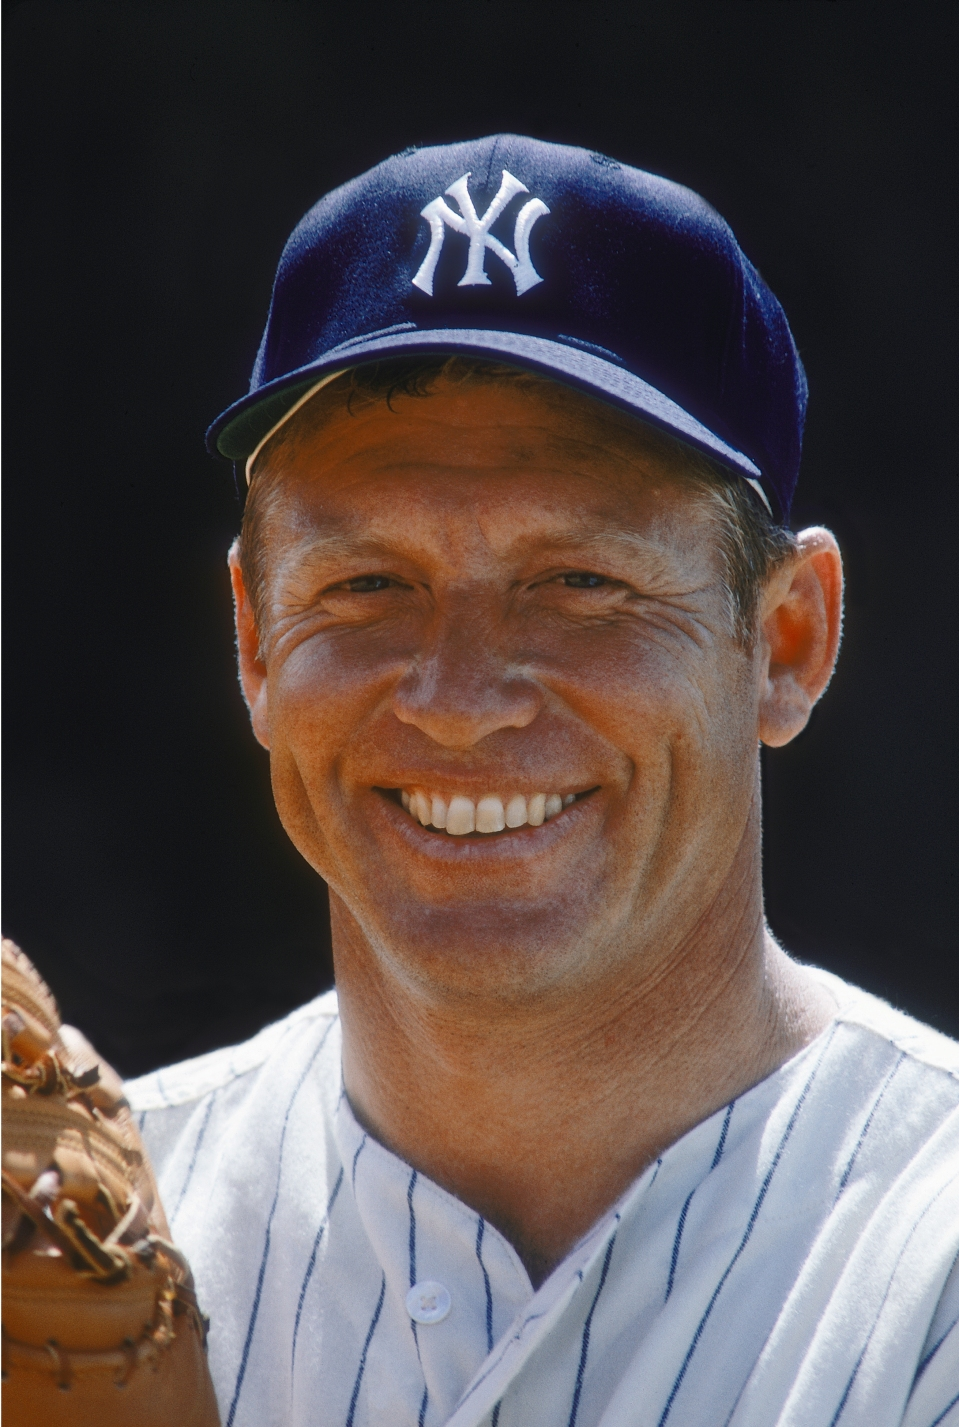 mickey mantle Mickey charles mantle (october 20, 1931 – august 13, 1995) was an american baseball player who was inducted into the national baseball hall of fame in 1974.